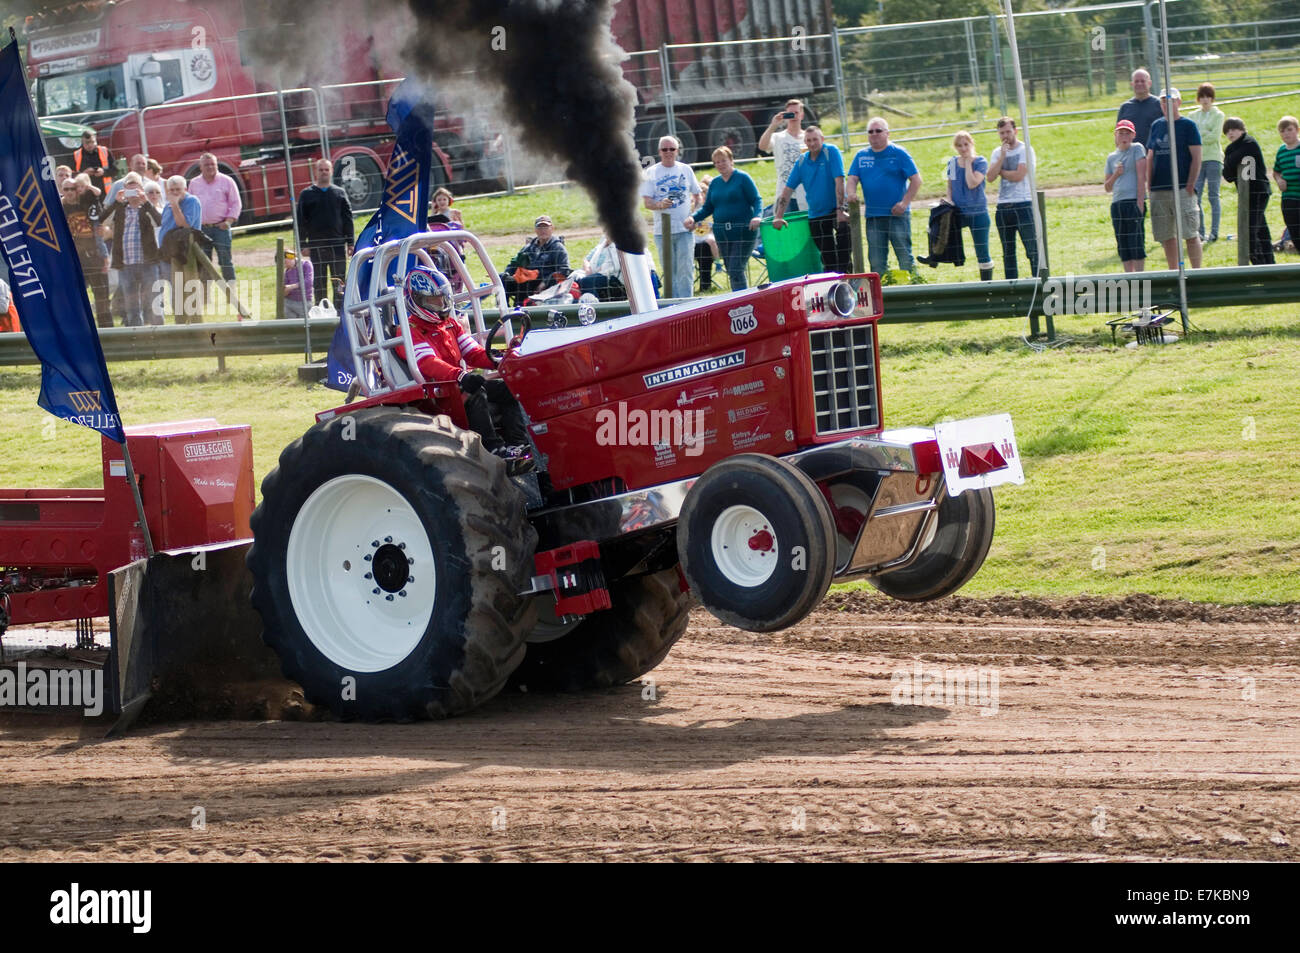 Power Wheels Tractor Pull : Tractor pulling puller pullers wheelie dragging a weighted